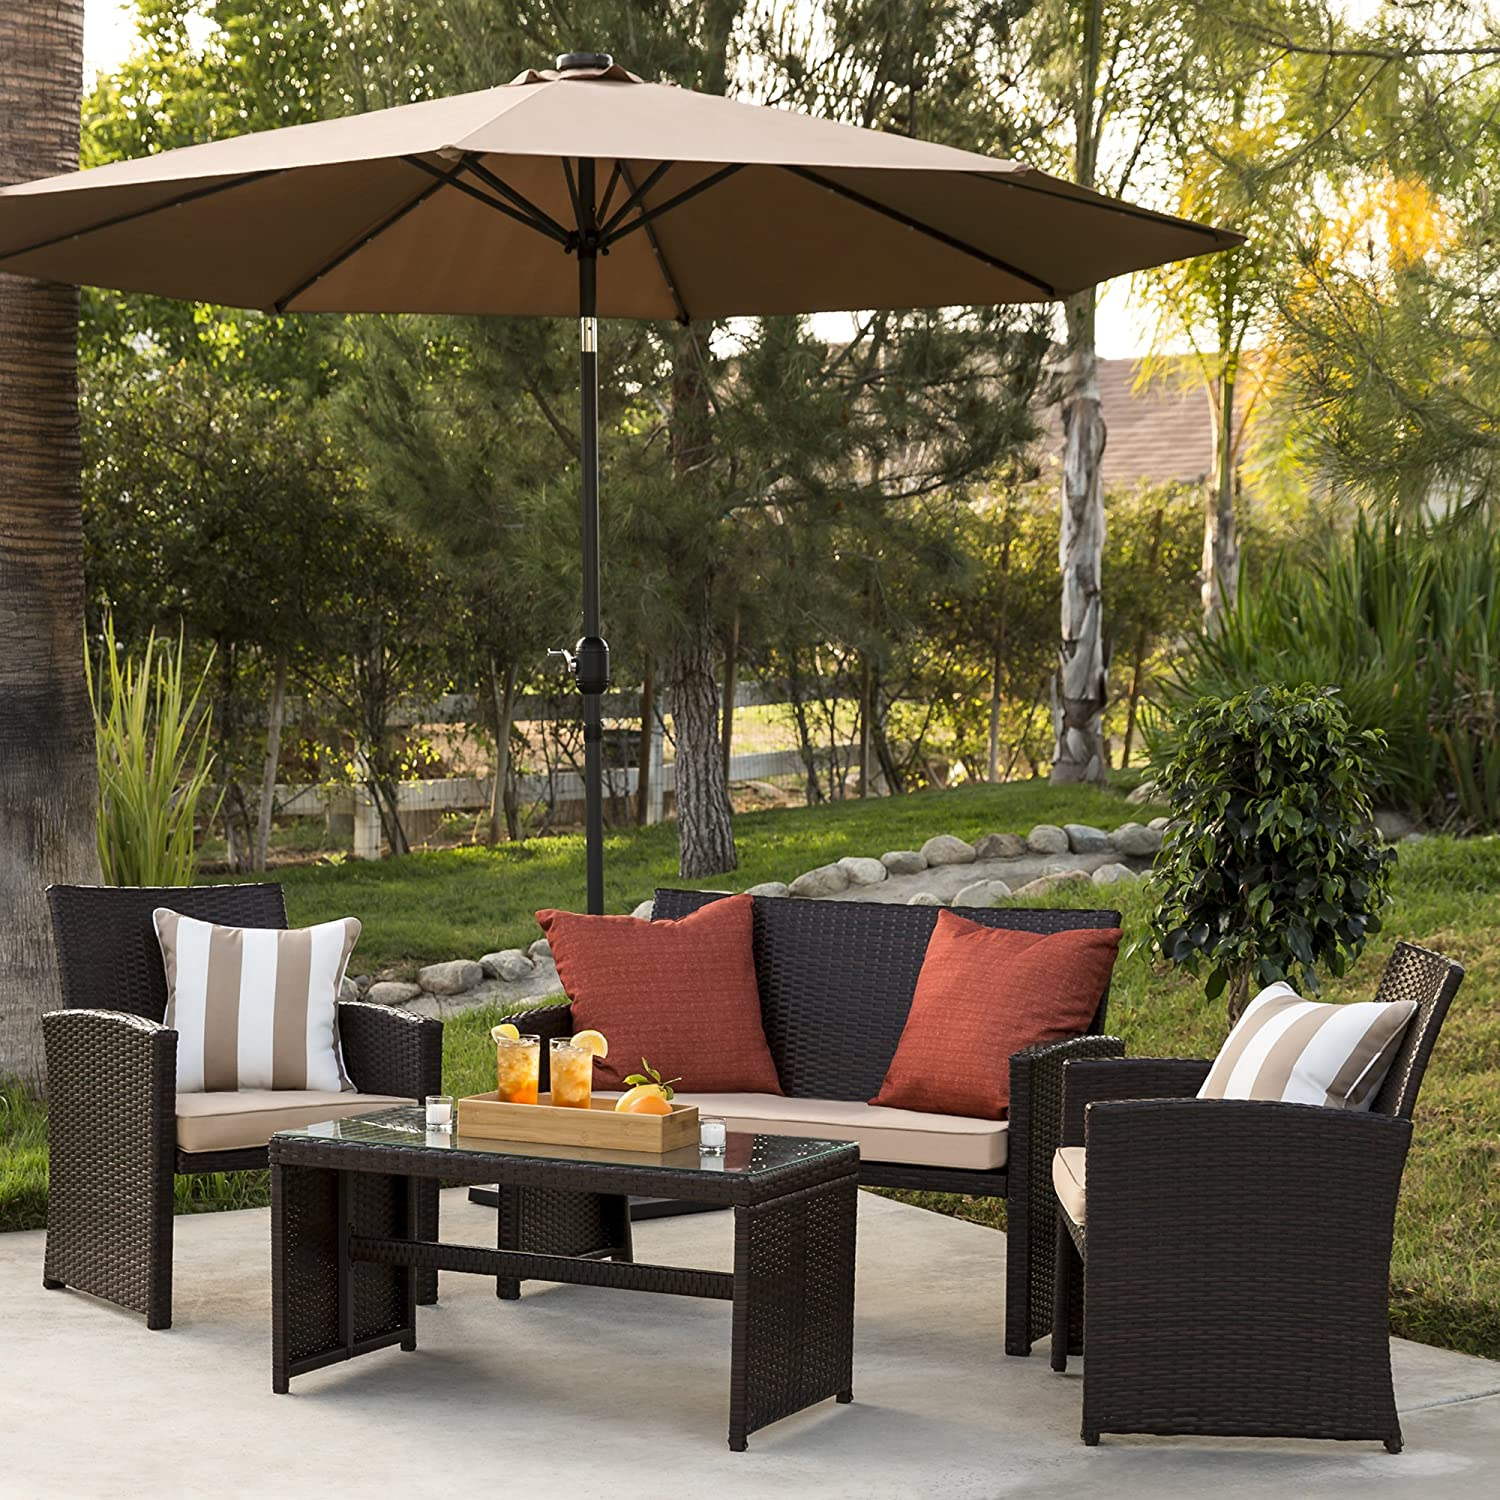 Amazon com best choice products 4 piece wicker patio furniture set w tempered glass 3 sofas table cushioned seats brown garden outdoor